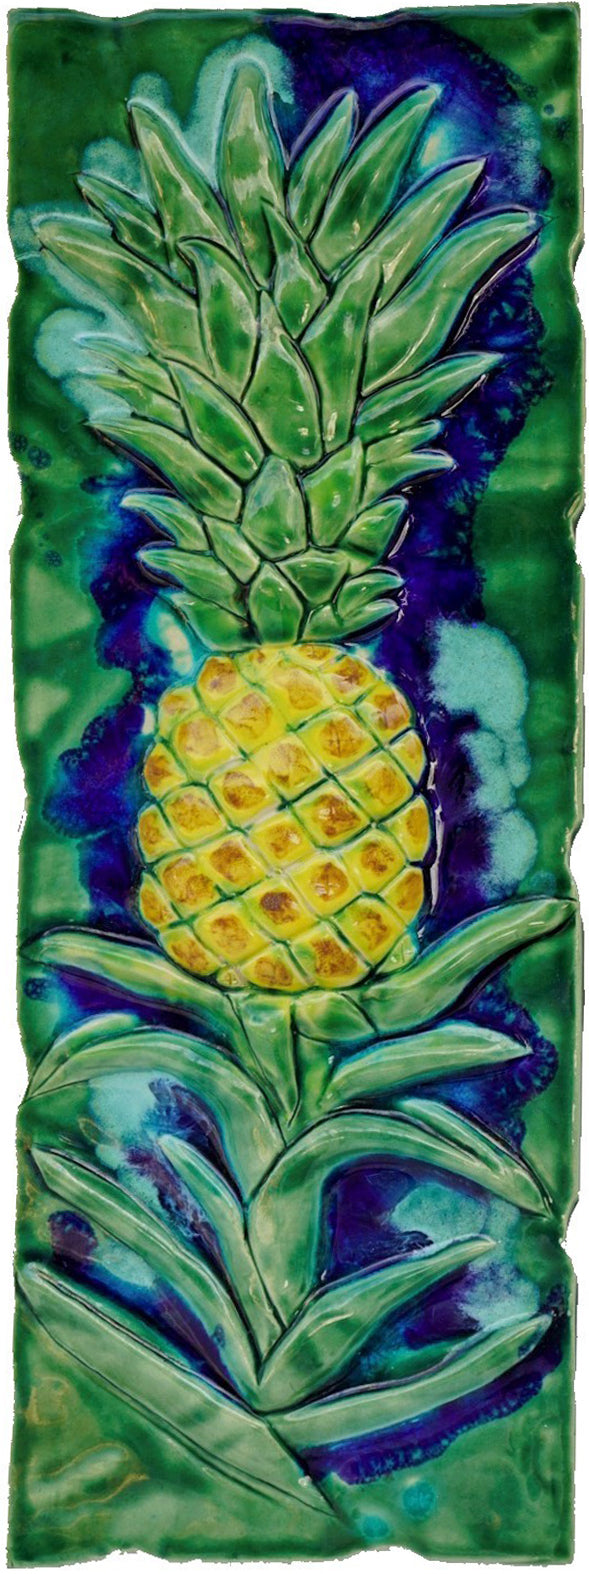 Pineapple décor, pineapple art, pineapple wall art, Hawaii art, Hawaiian art, Hawaiian décor, Hawaiian wall art, Hawaii décor, pineapple art, pineapple décor, pineapple wall art, pineapple tropical art, wall art, bathroom tile, shower tile, kitchen tile, pool tile,